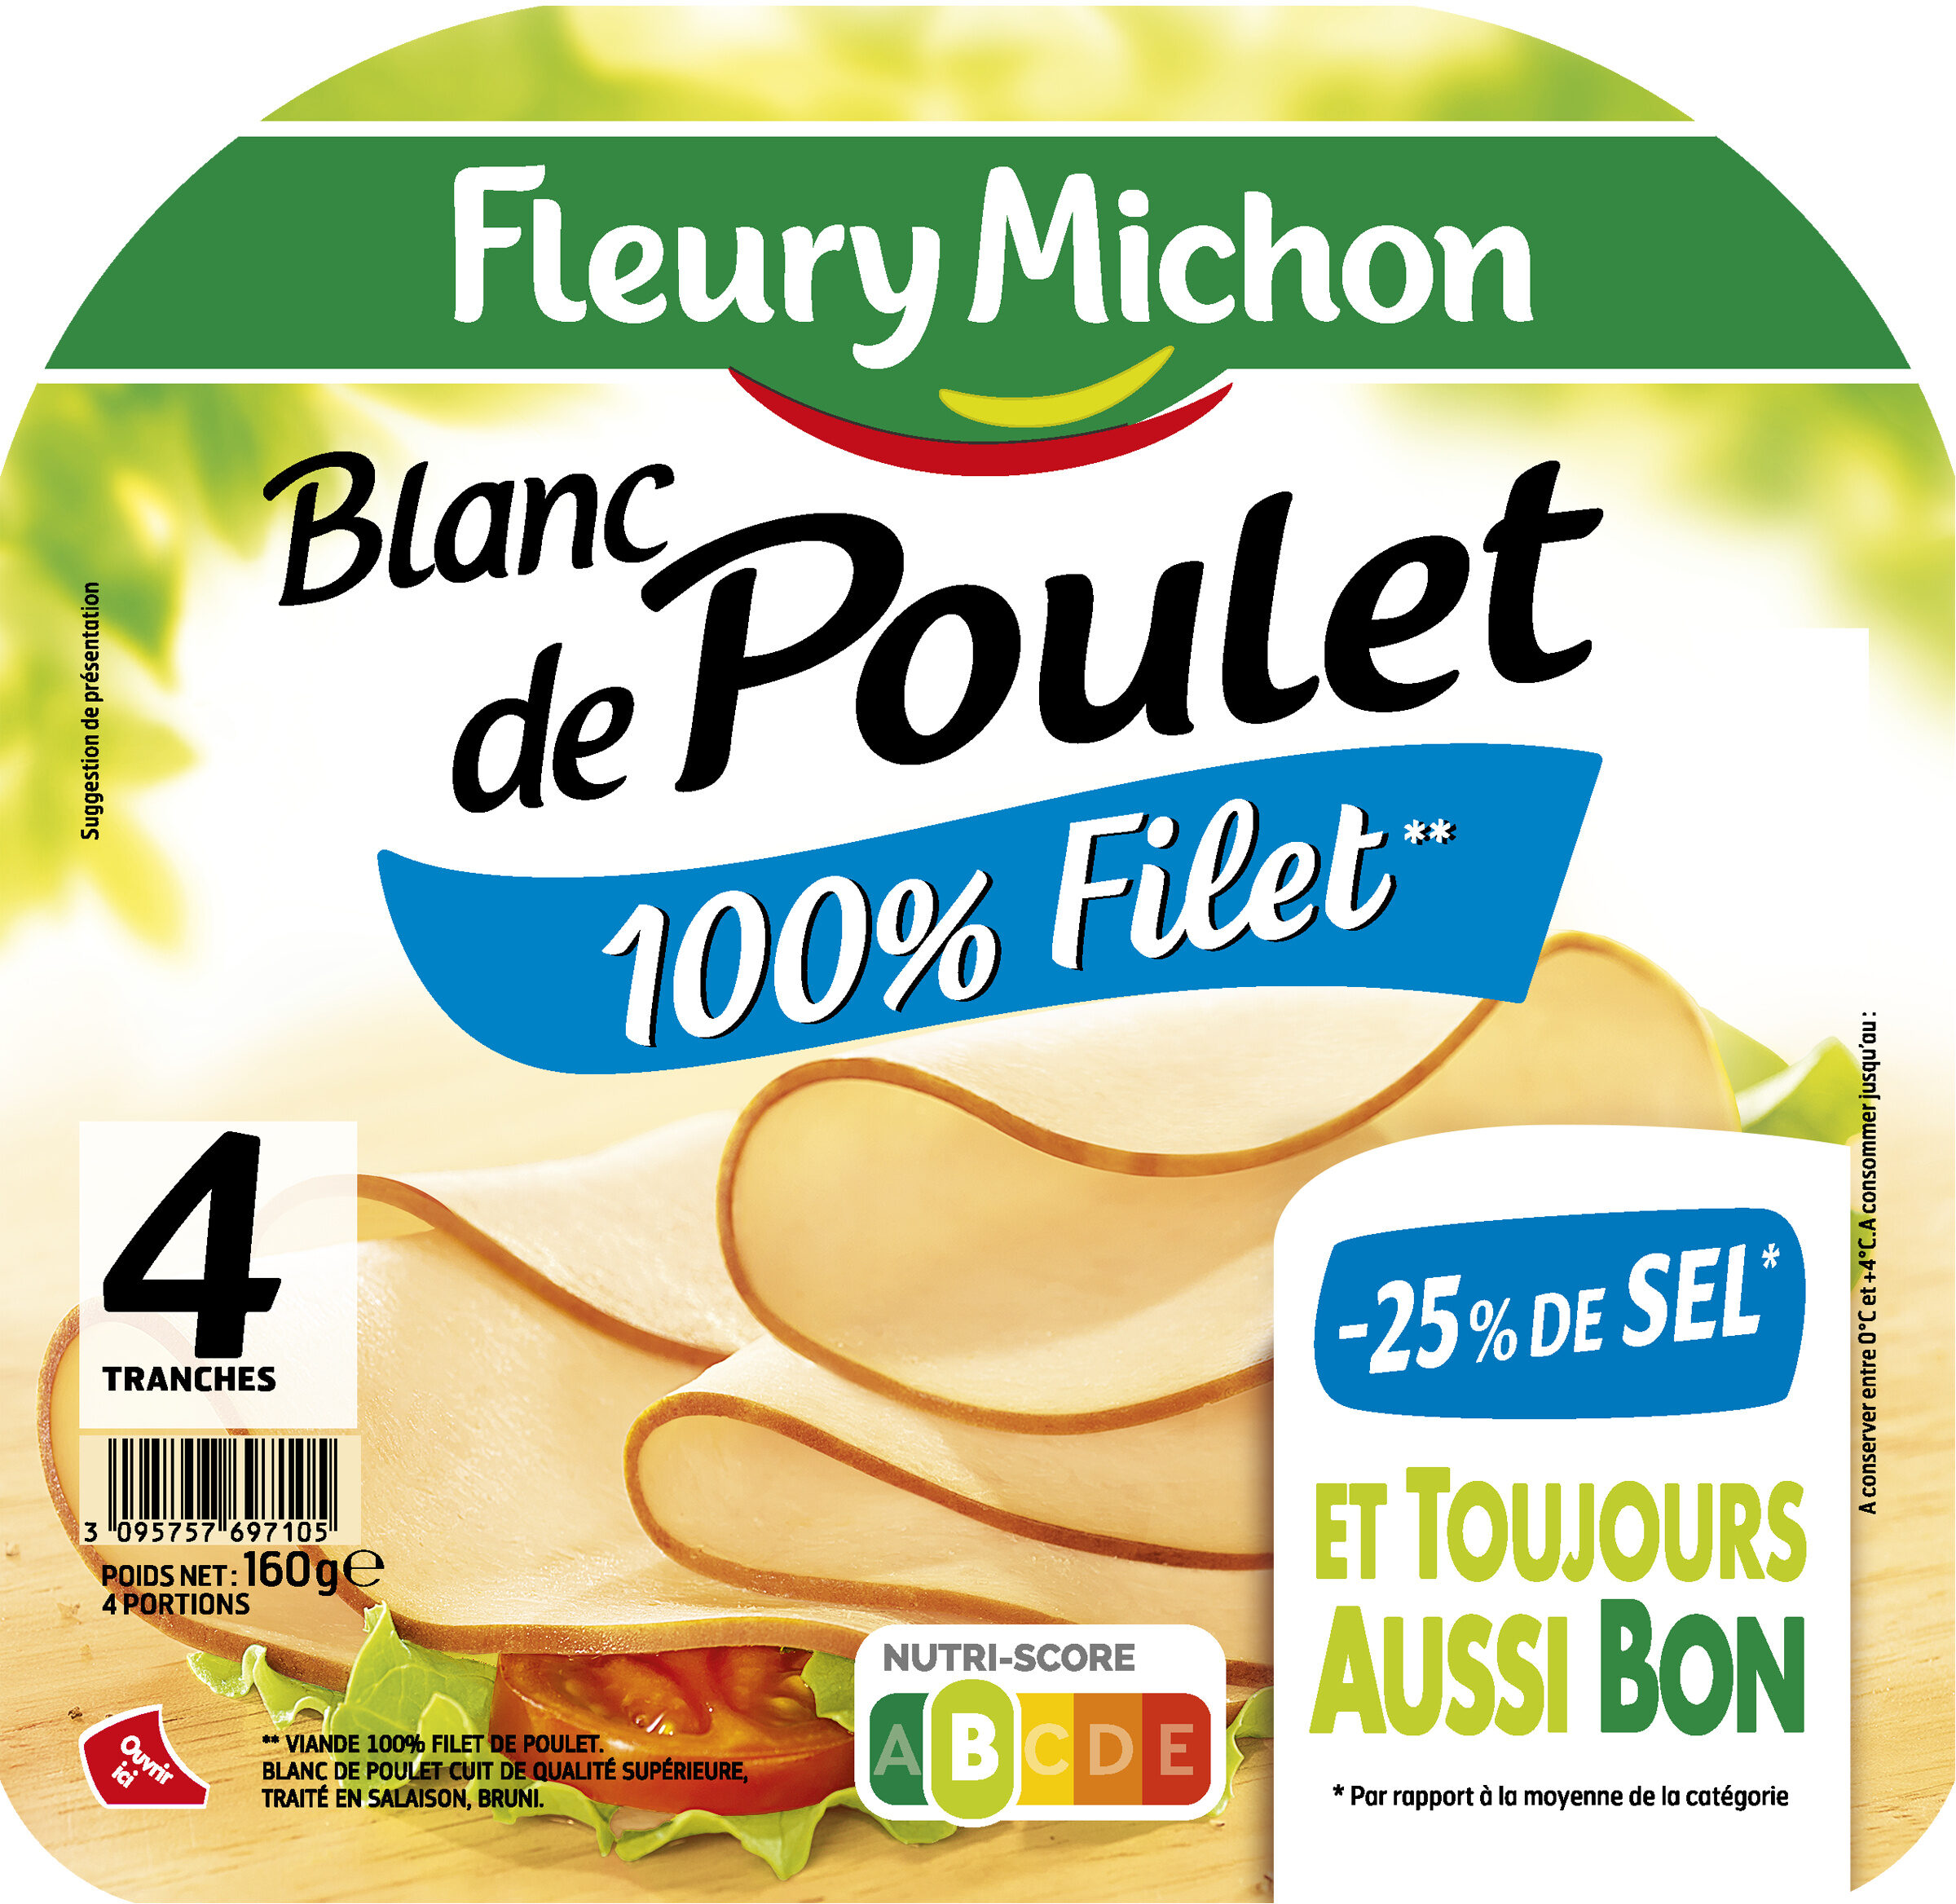 Blanc de poulet  -25% de sel* - 100% filet** - 4tr - Product - fr